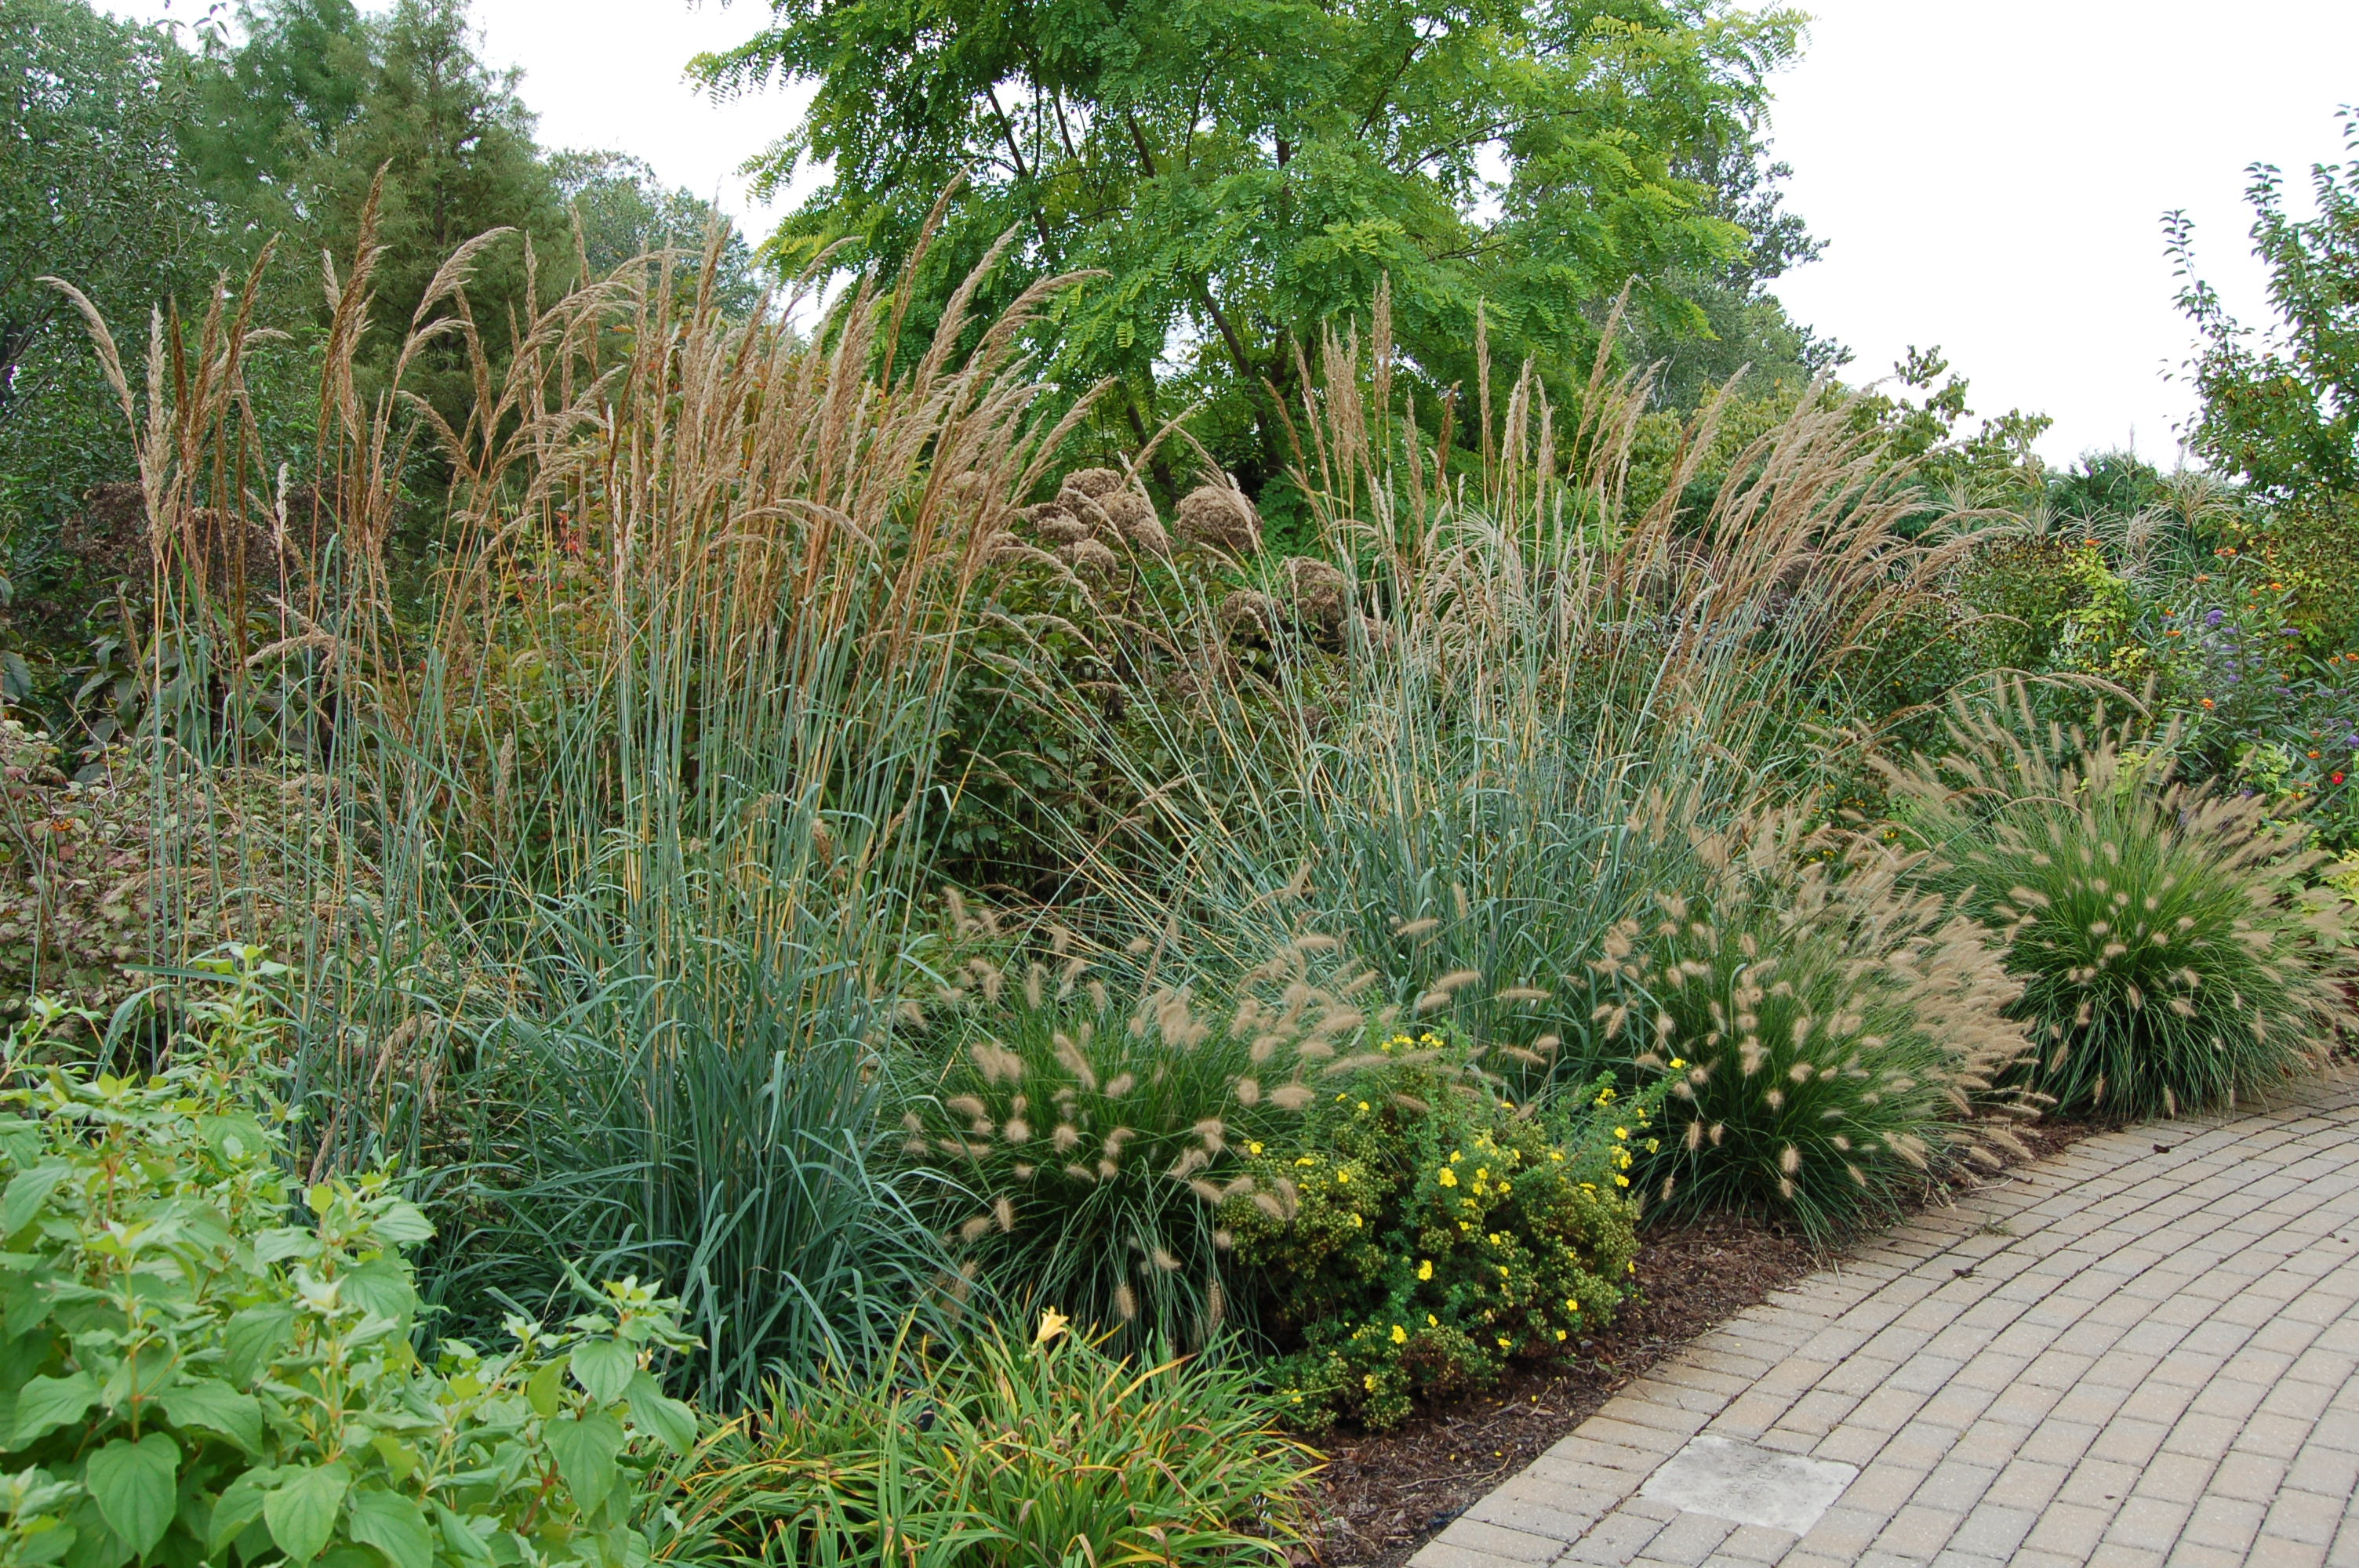 10 favorite ornamental grasses for midwest landscaping for Best ornamental grasses for full sun